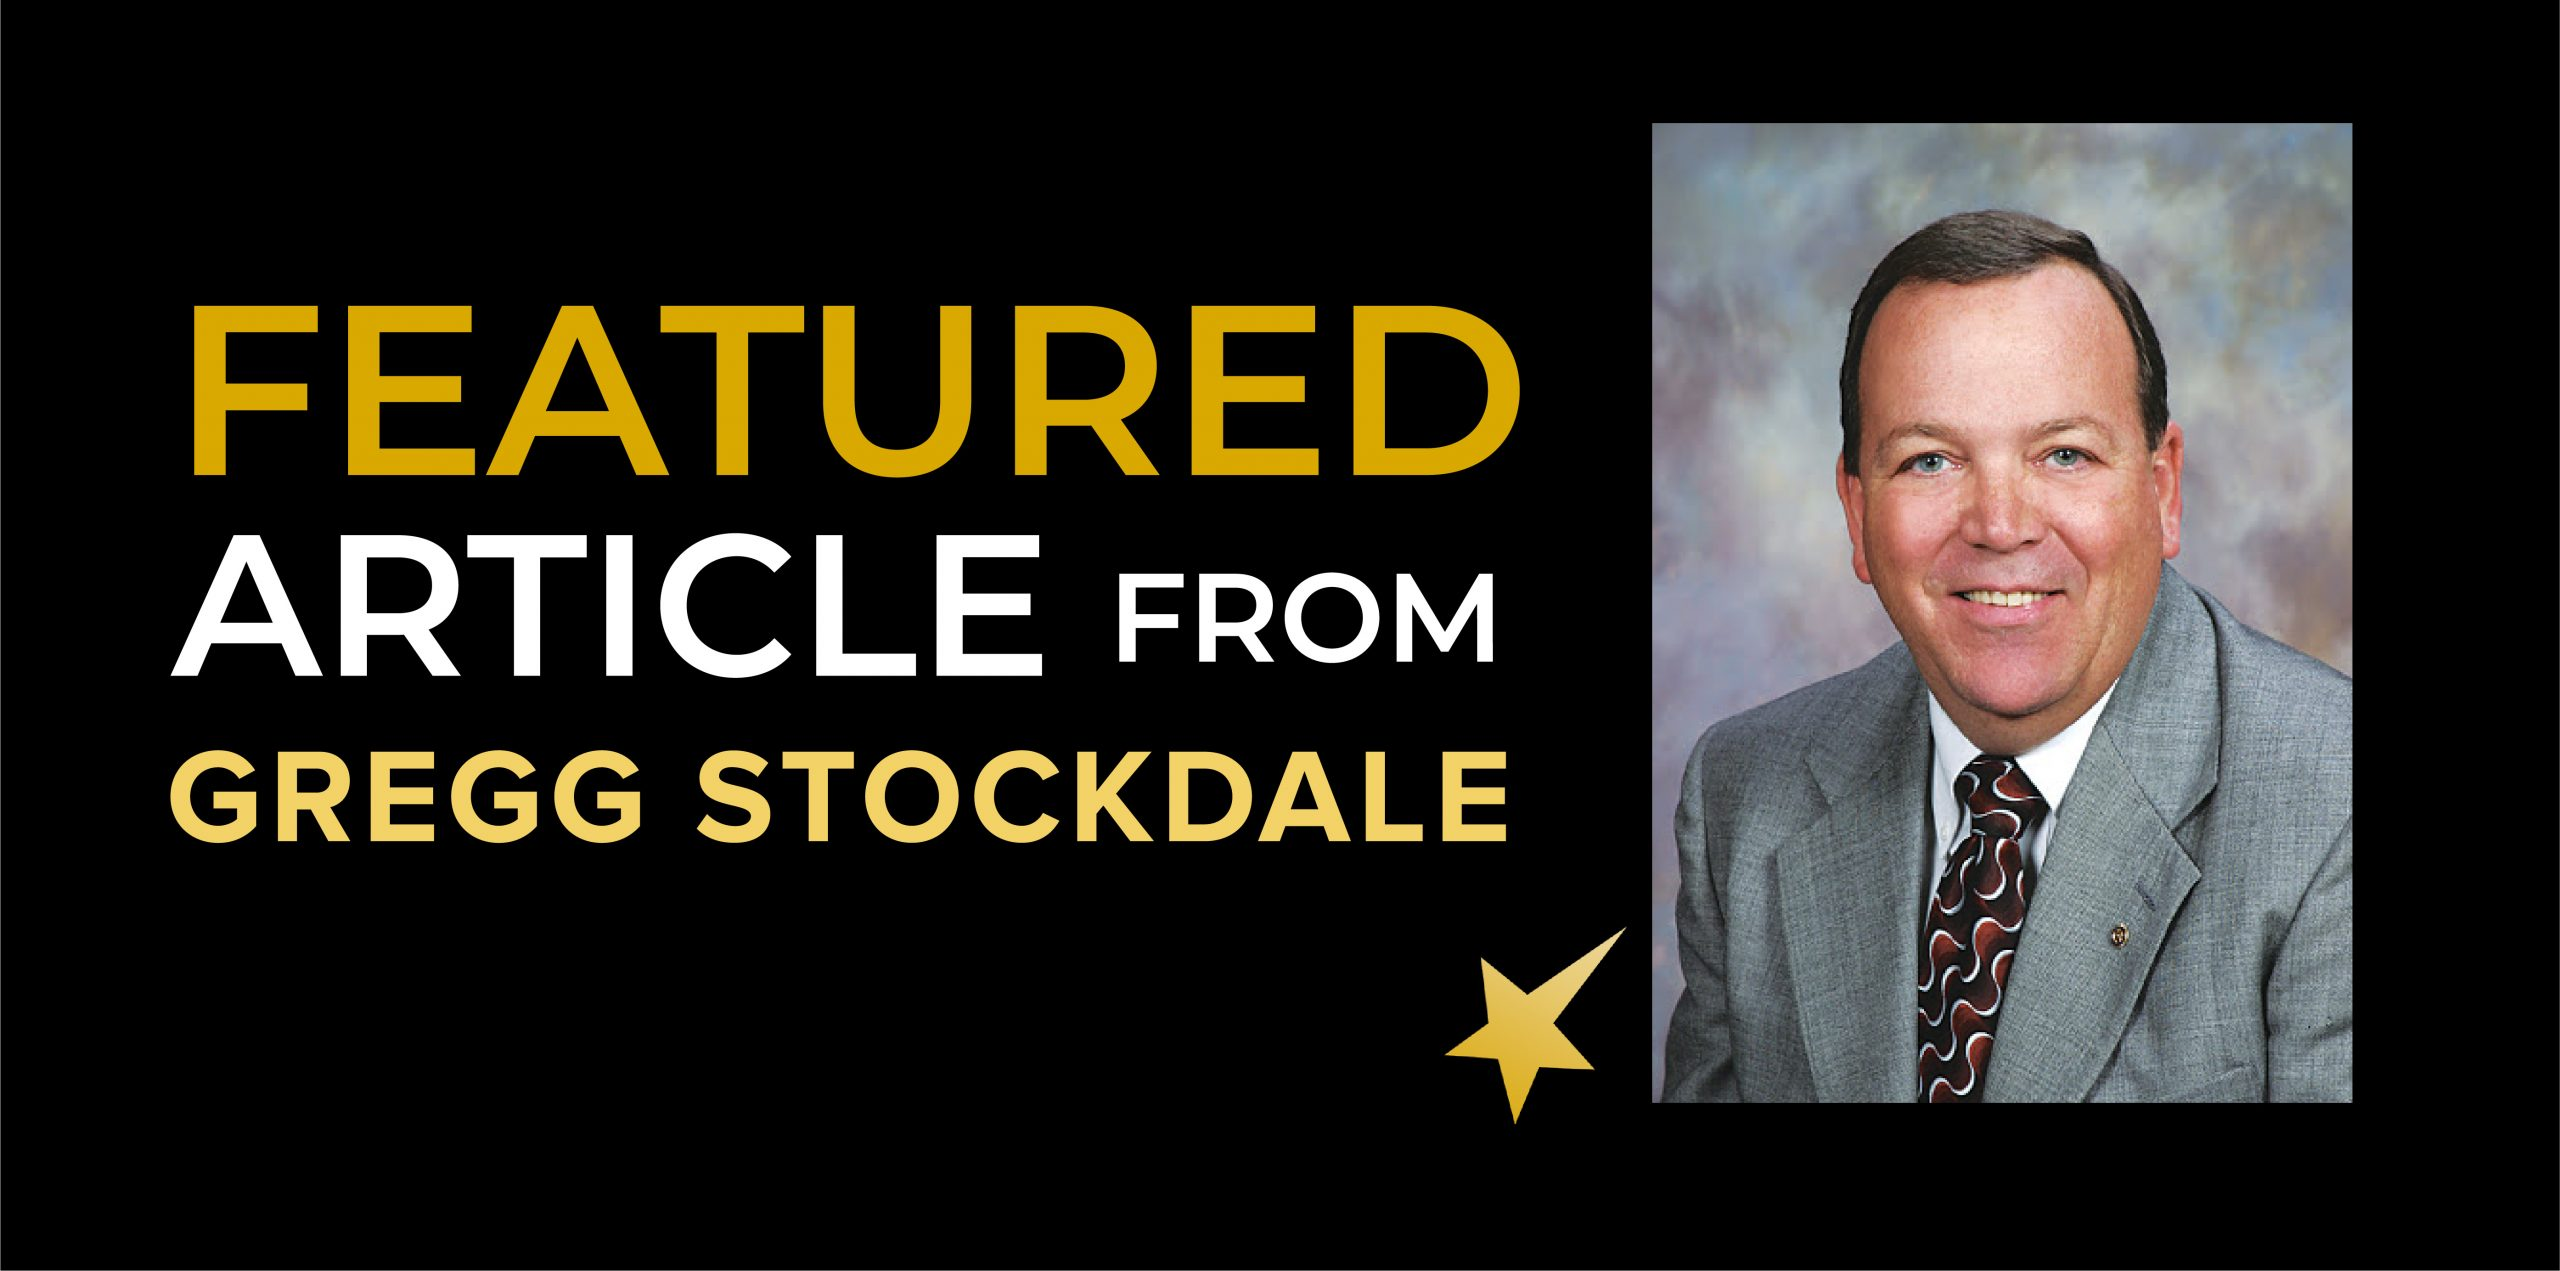 FEATURED ARTICLE FROM GREGG STOCKDALE